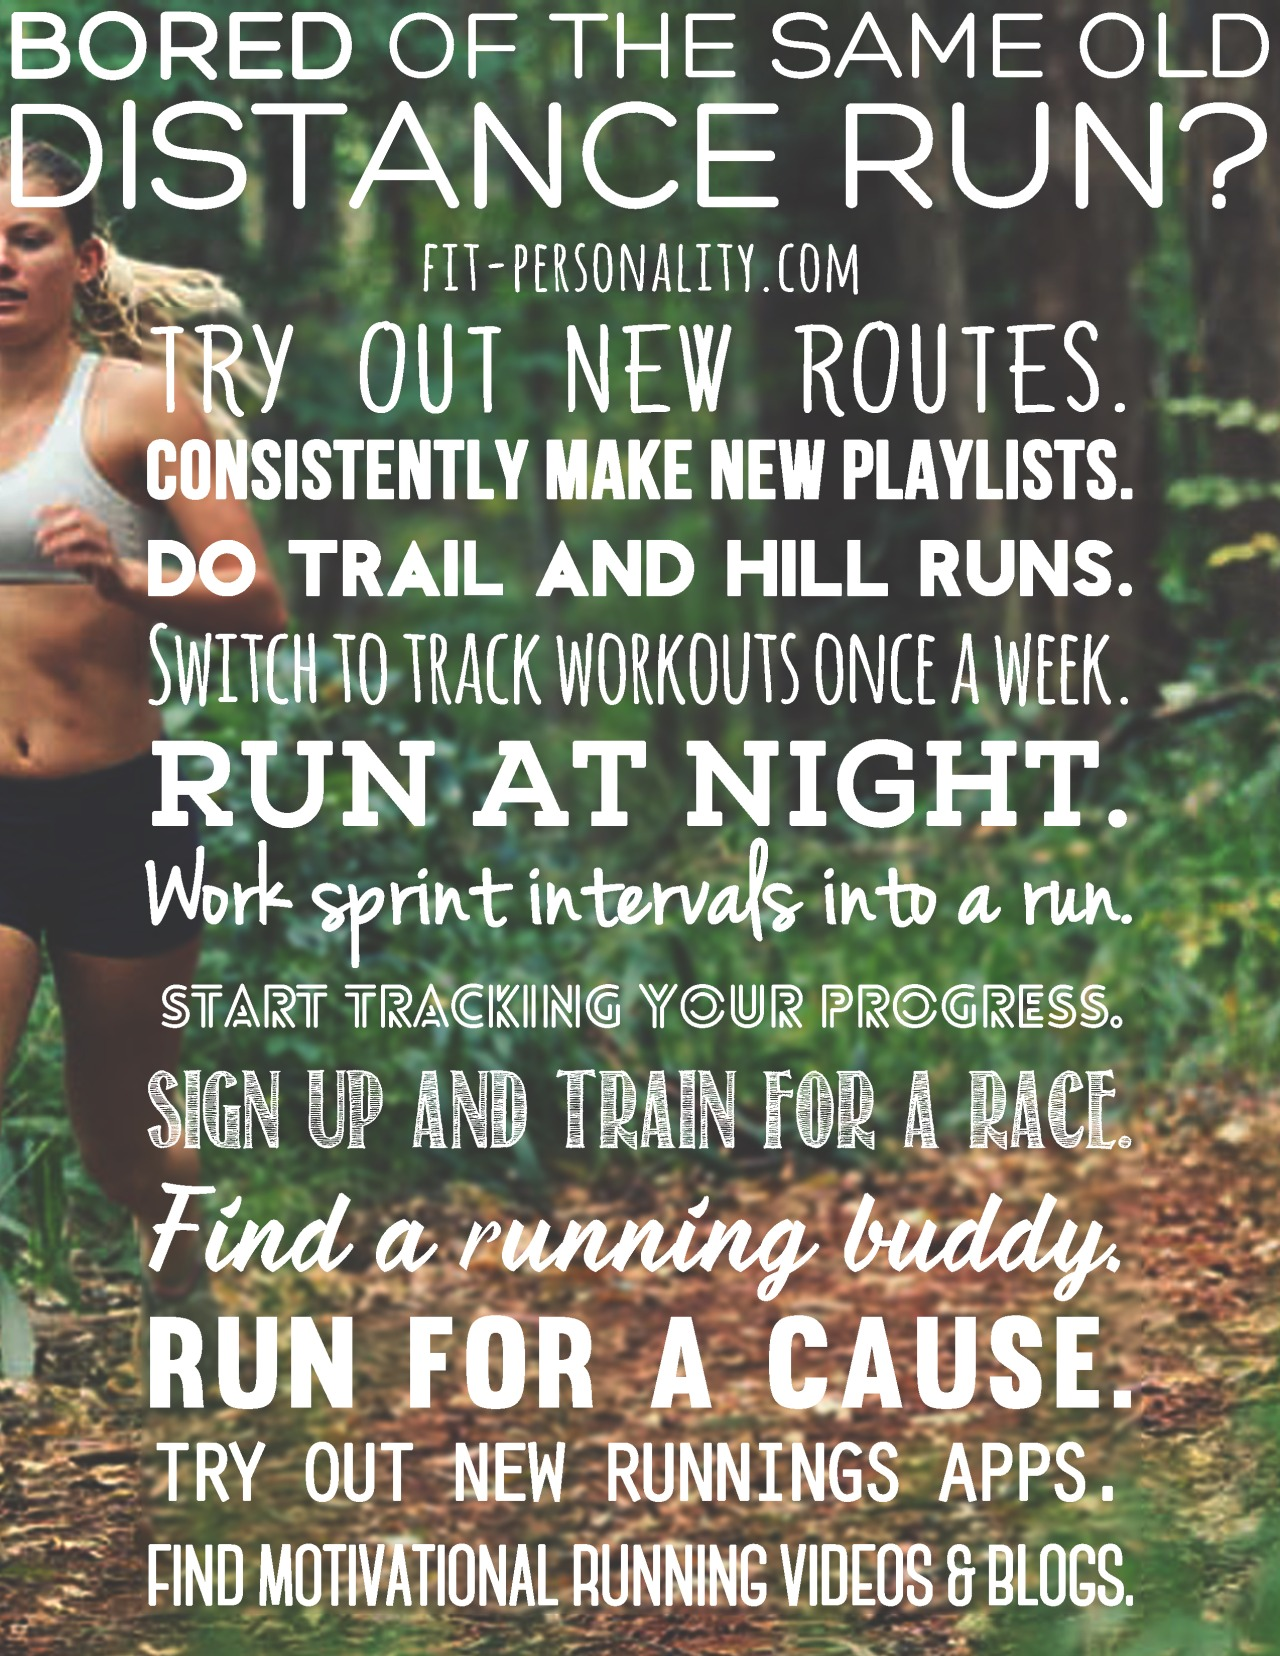 fit-personality :     Hey y'all! Even I sometimes get bored of doing the same route. Living on a tiny island, it's hard to find new places to run, but here are things I do to switch it up when I am feeling bored and tired of the repetition :)     Revitalize your run!